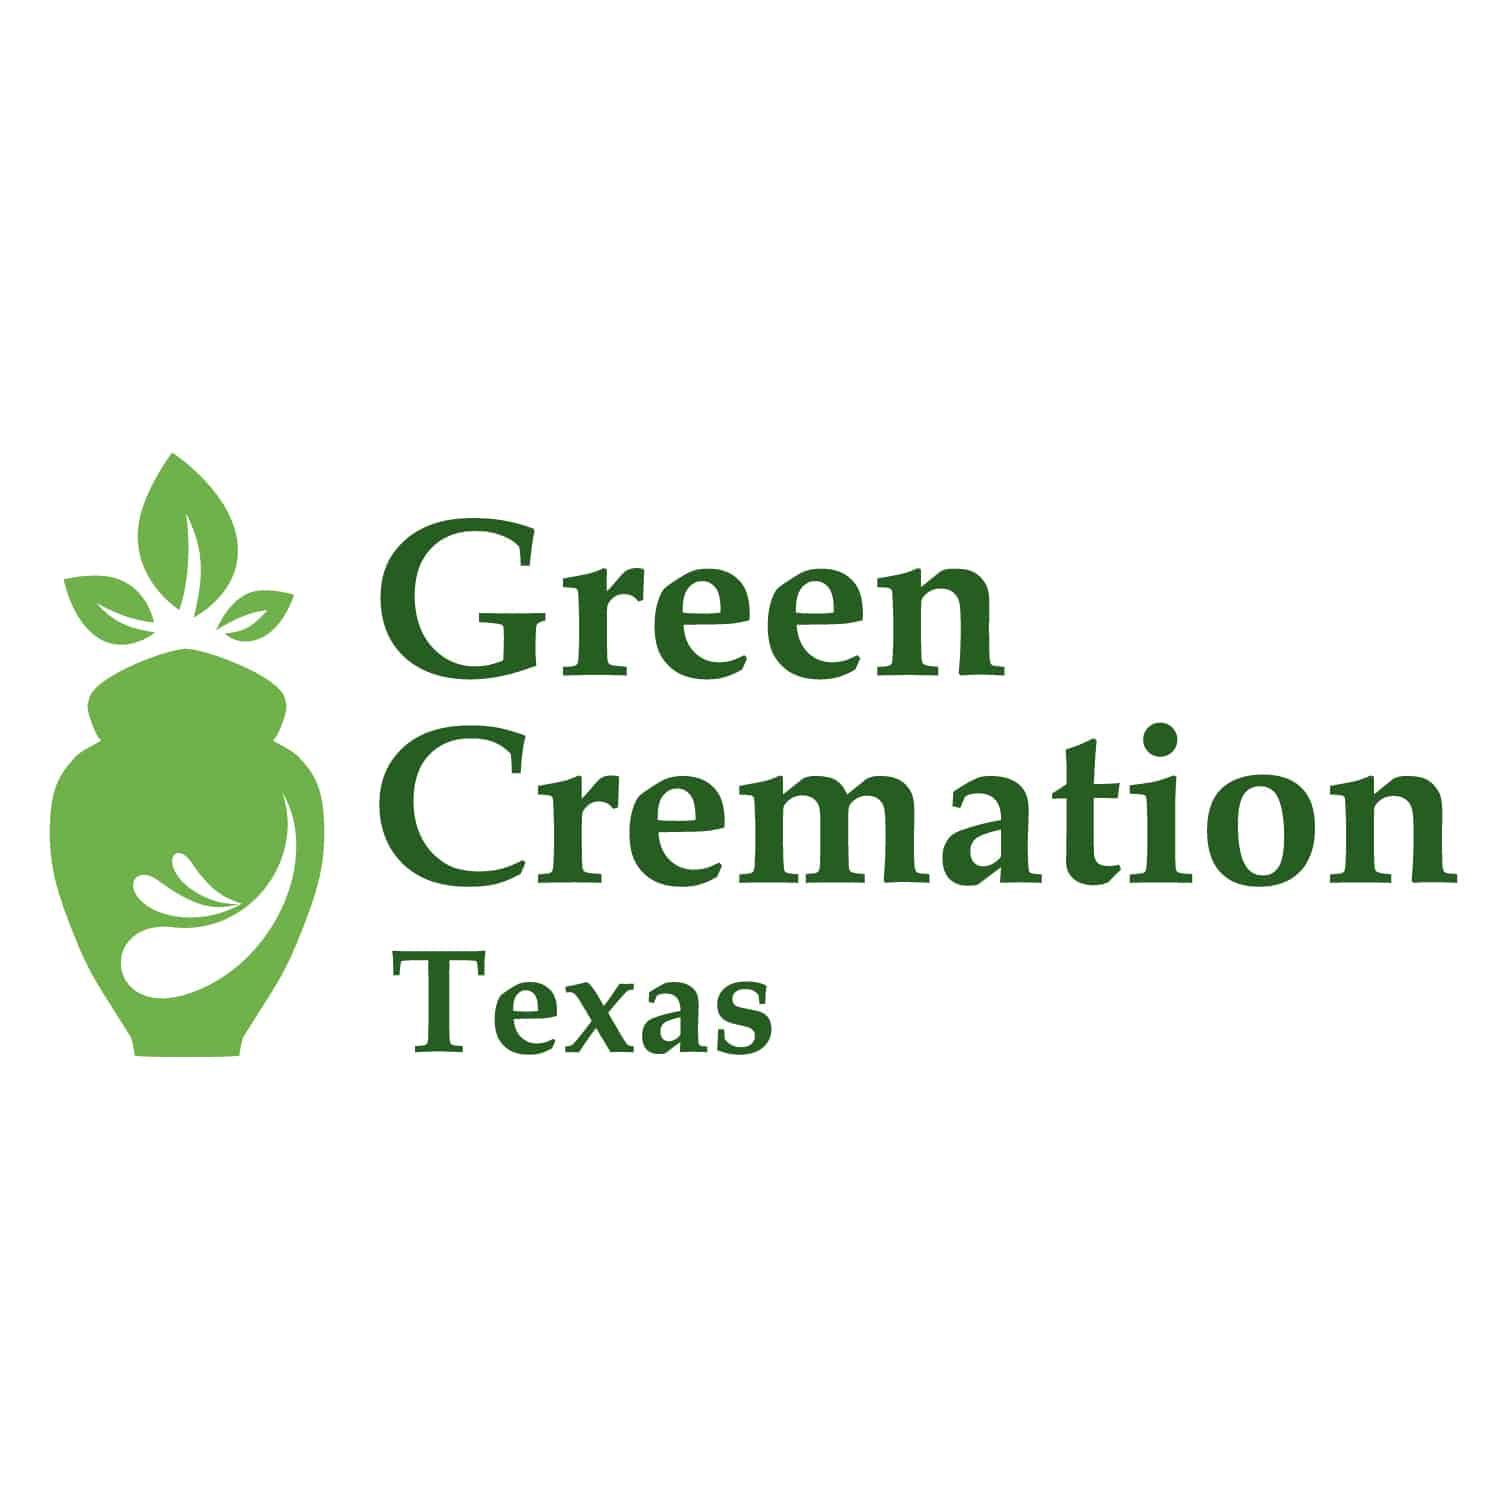 Green Cremation Texas - Austin Funeral Home, Offers The Best Austin Funeral Home Services